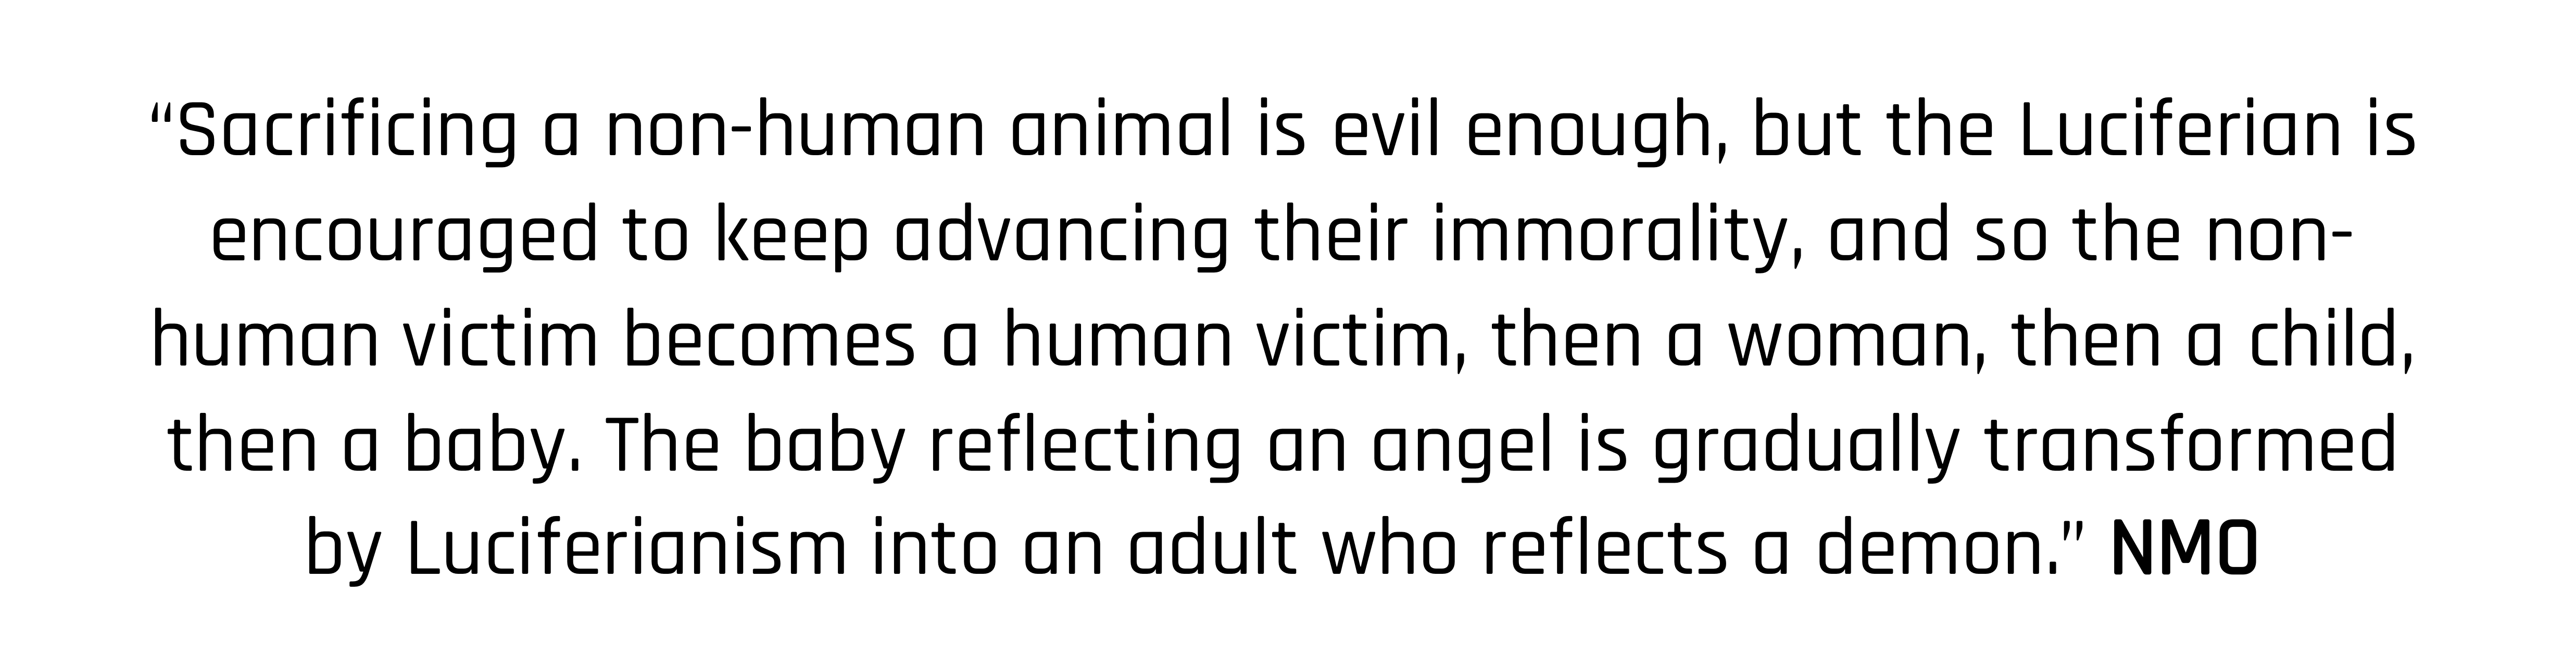 """Sacrificing a non-human animal is evil enough, but the Luciferian is encouraged to keep advancing their immorality, and so the non-human victim becomes a human victim, then a woman, then a child, then a baby. The baby reflecting an angel is gradually transformed by Luciferianism into an adult who reflects a demon."" NMO"